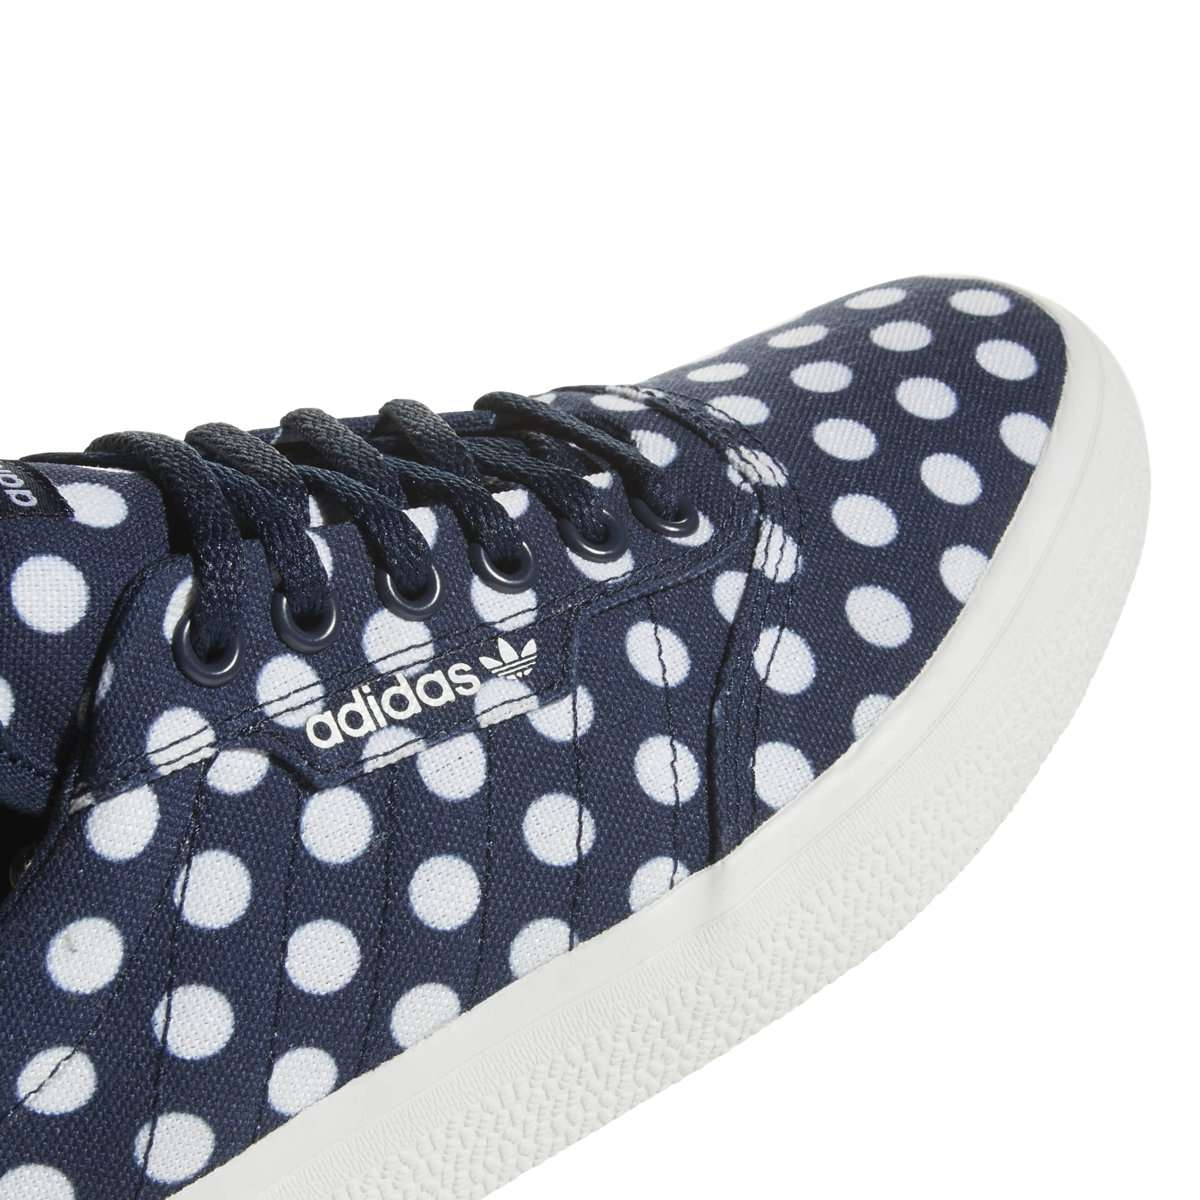 promo code a0060 ebe05 ... Adidas 3MC VULC SHOES - League Outfitters ...